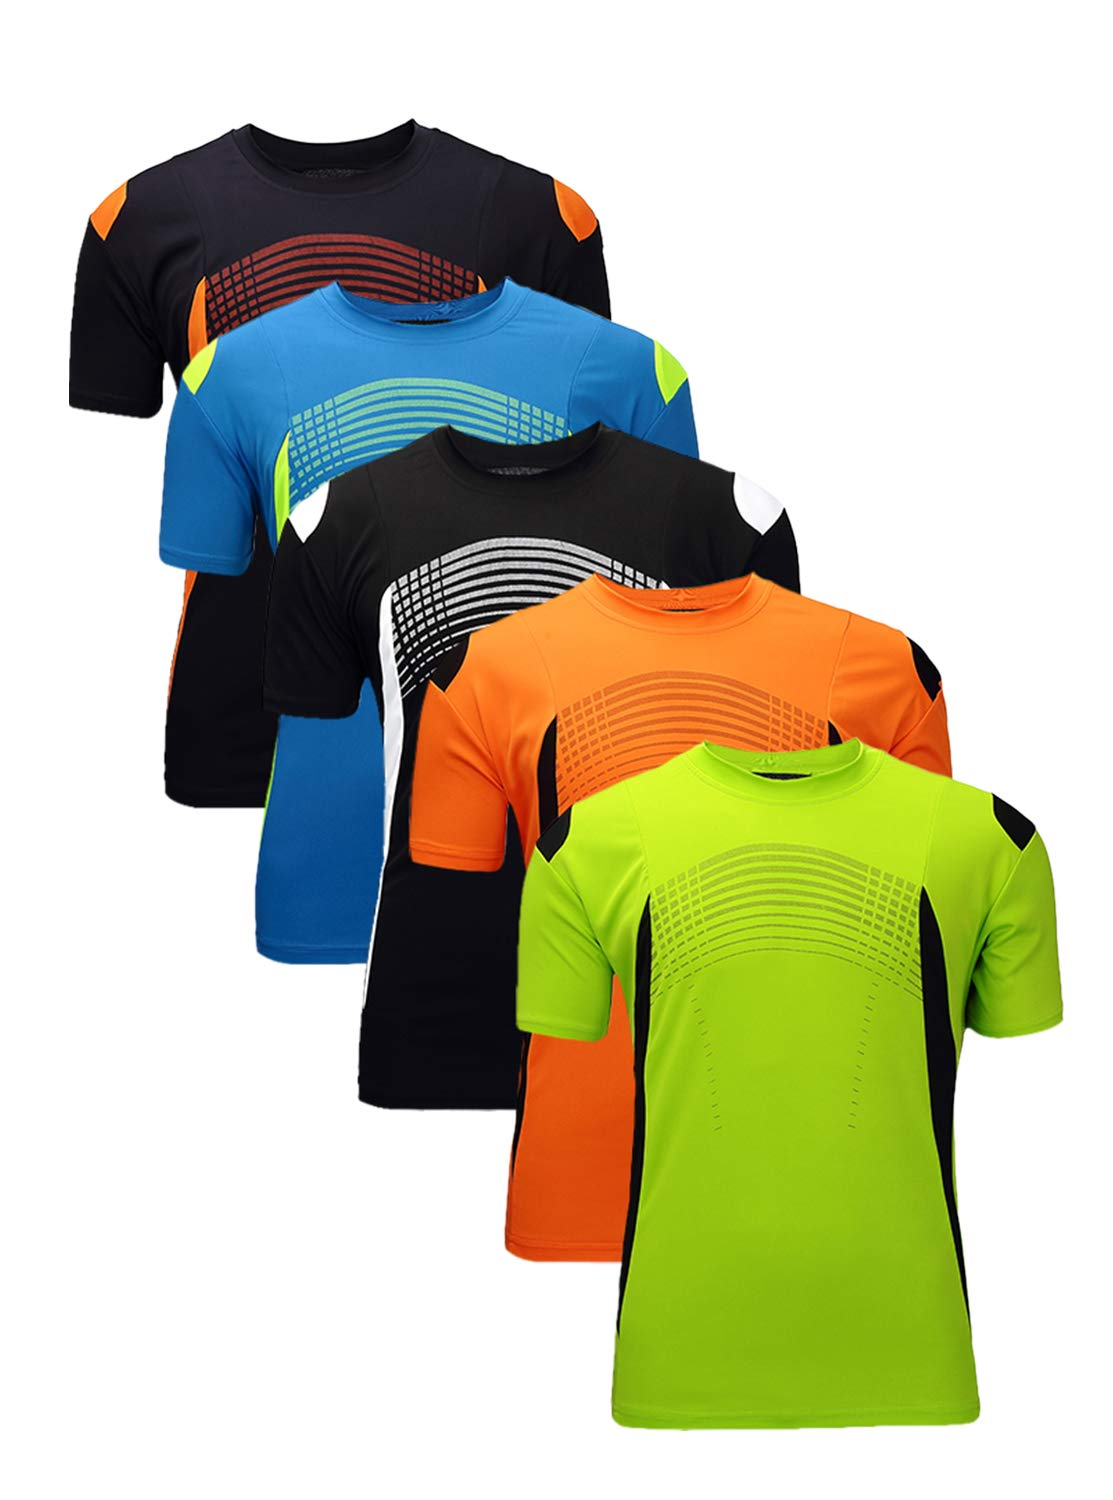 GEEK LIGHTING Men's Regular-Fit Quick-Dry Soccer Shirt(Green&Orange&Black&Blue&Navy,S)